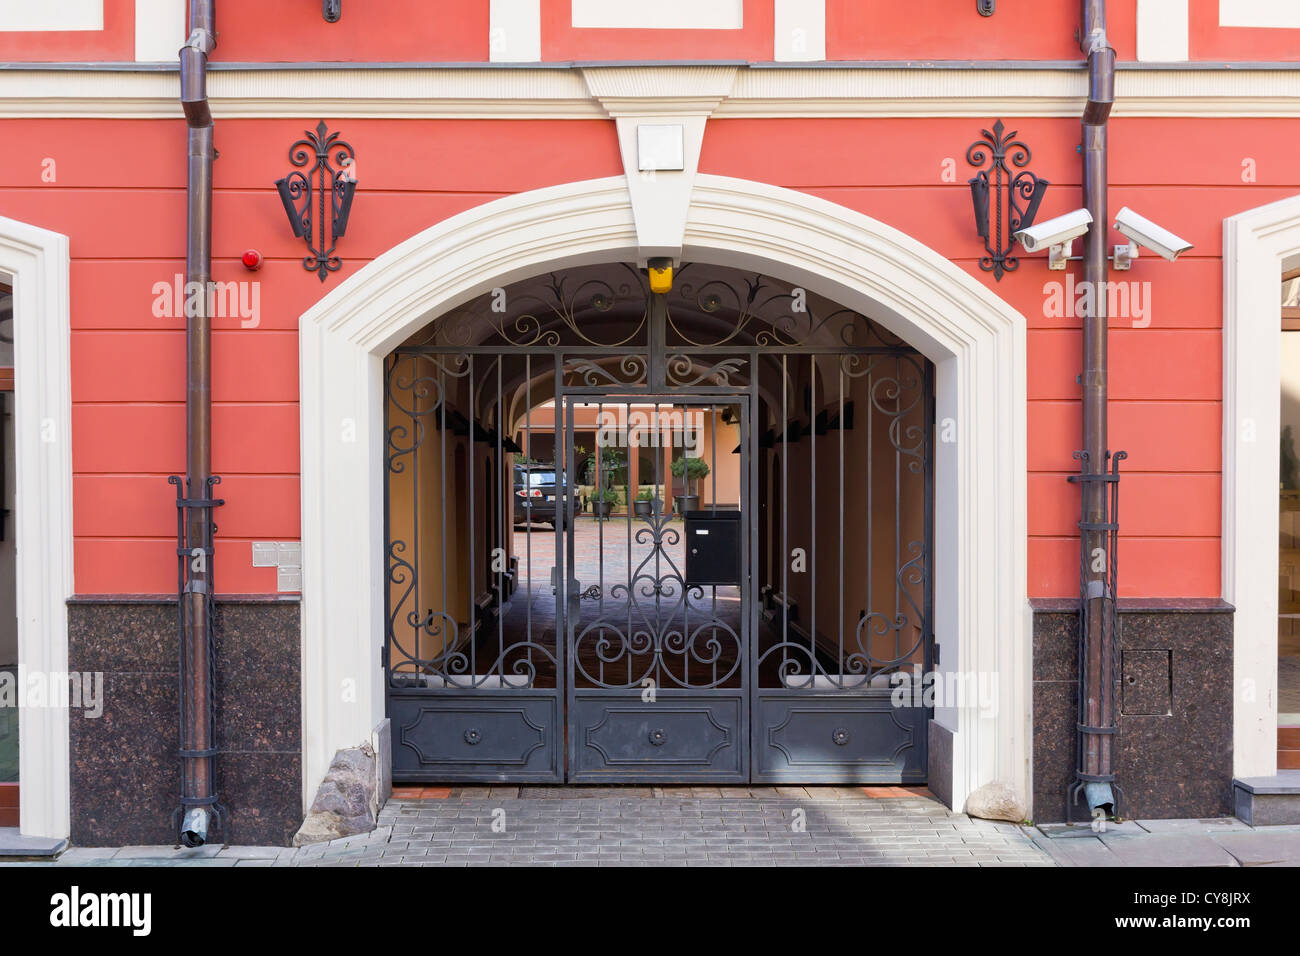 Video cameras monitor the entrance. Iron mass production gates bar the way. Outside the gates is a public domain - Stock Image